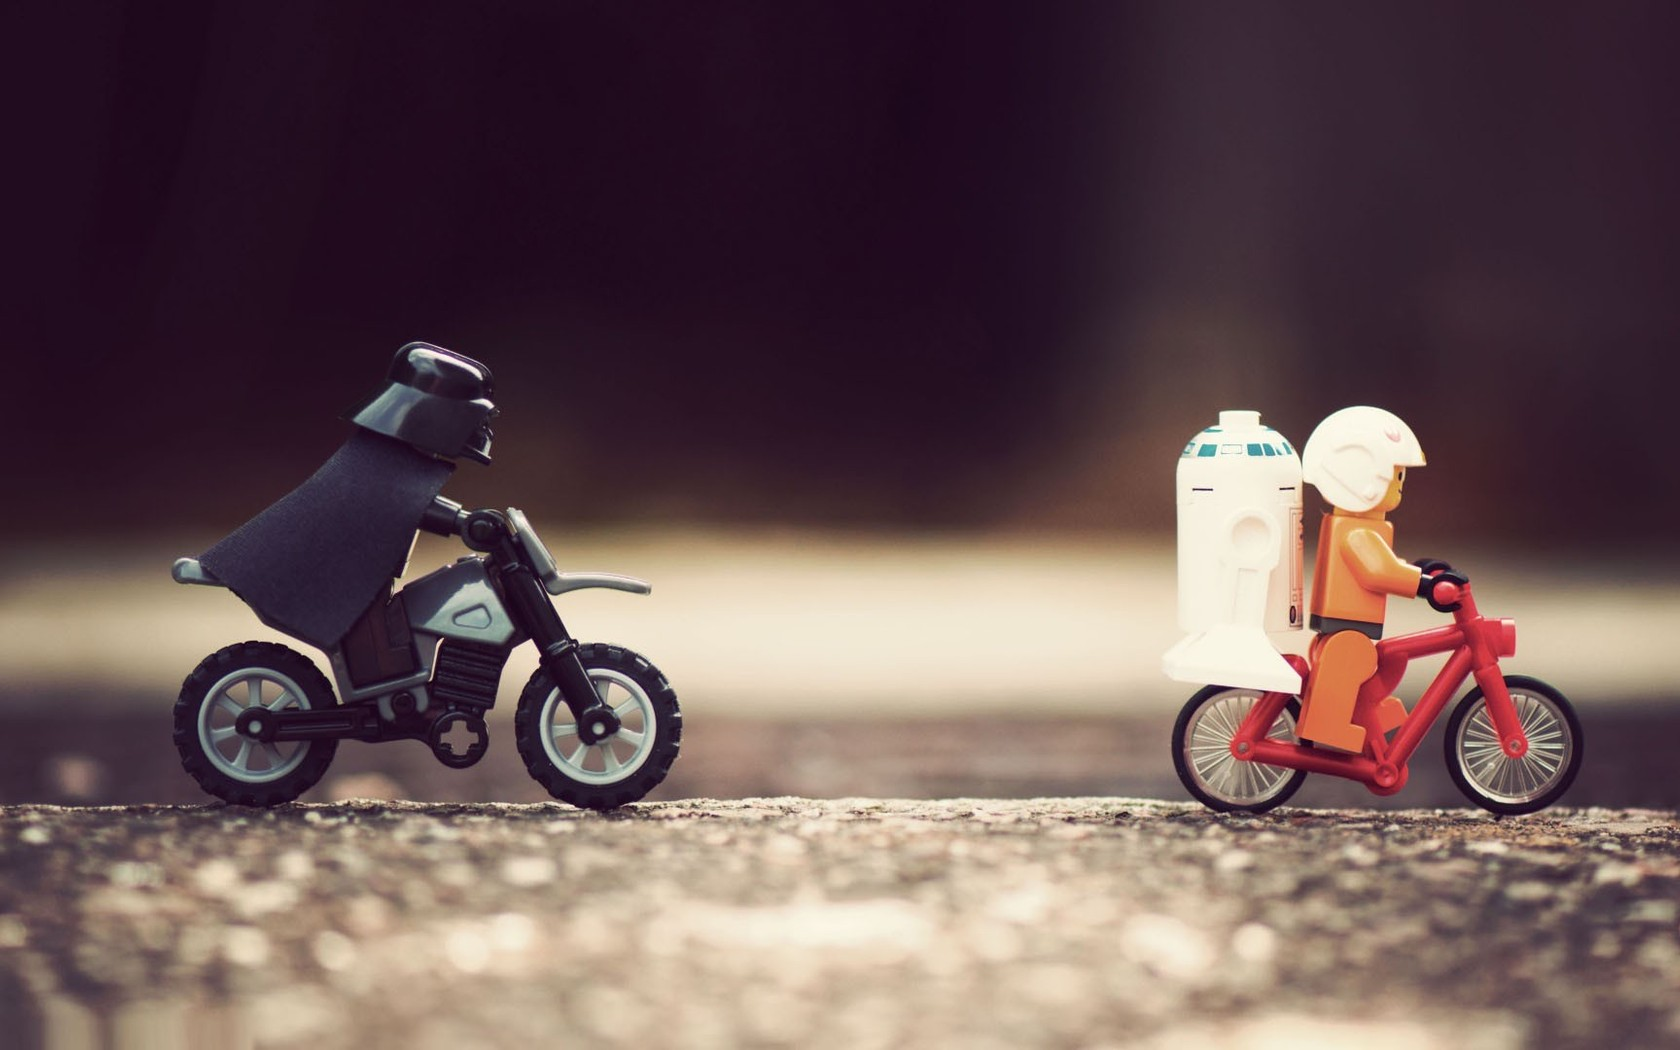 Cute Wallpapers Hd For Whatsapp Darth Vader Comes Out From Keyboard Funny Wallpaper